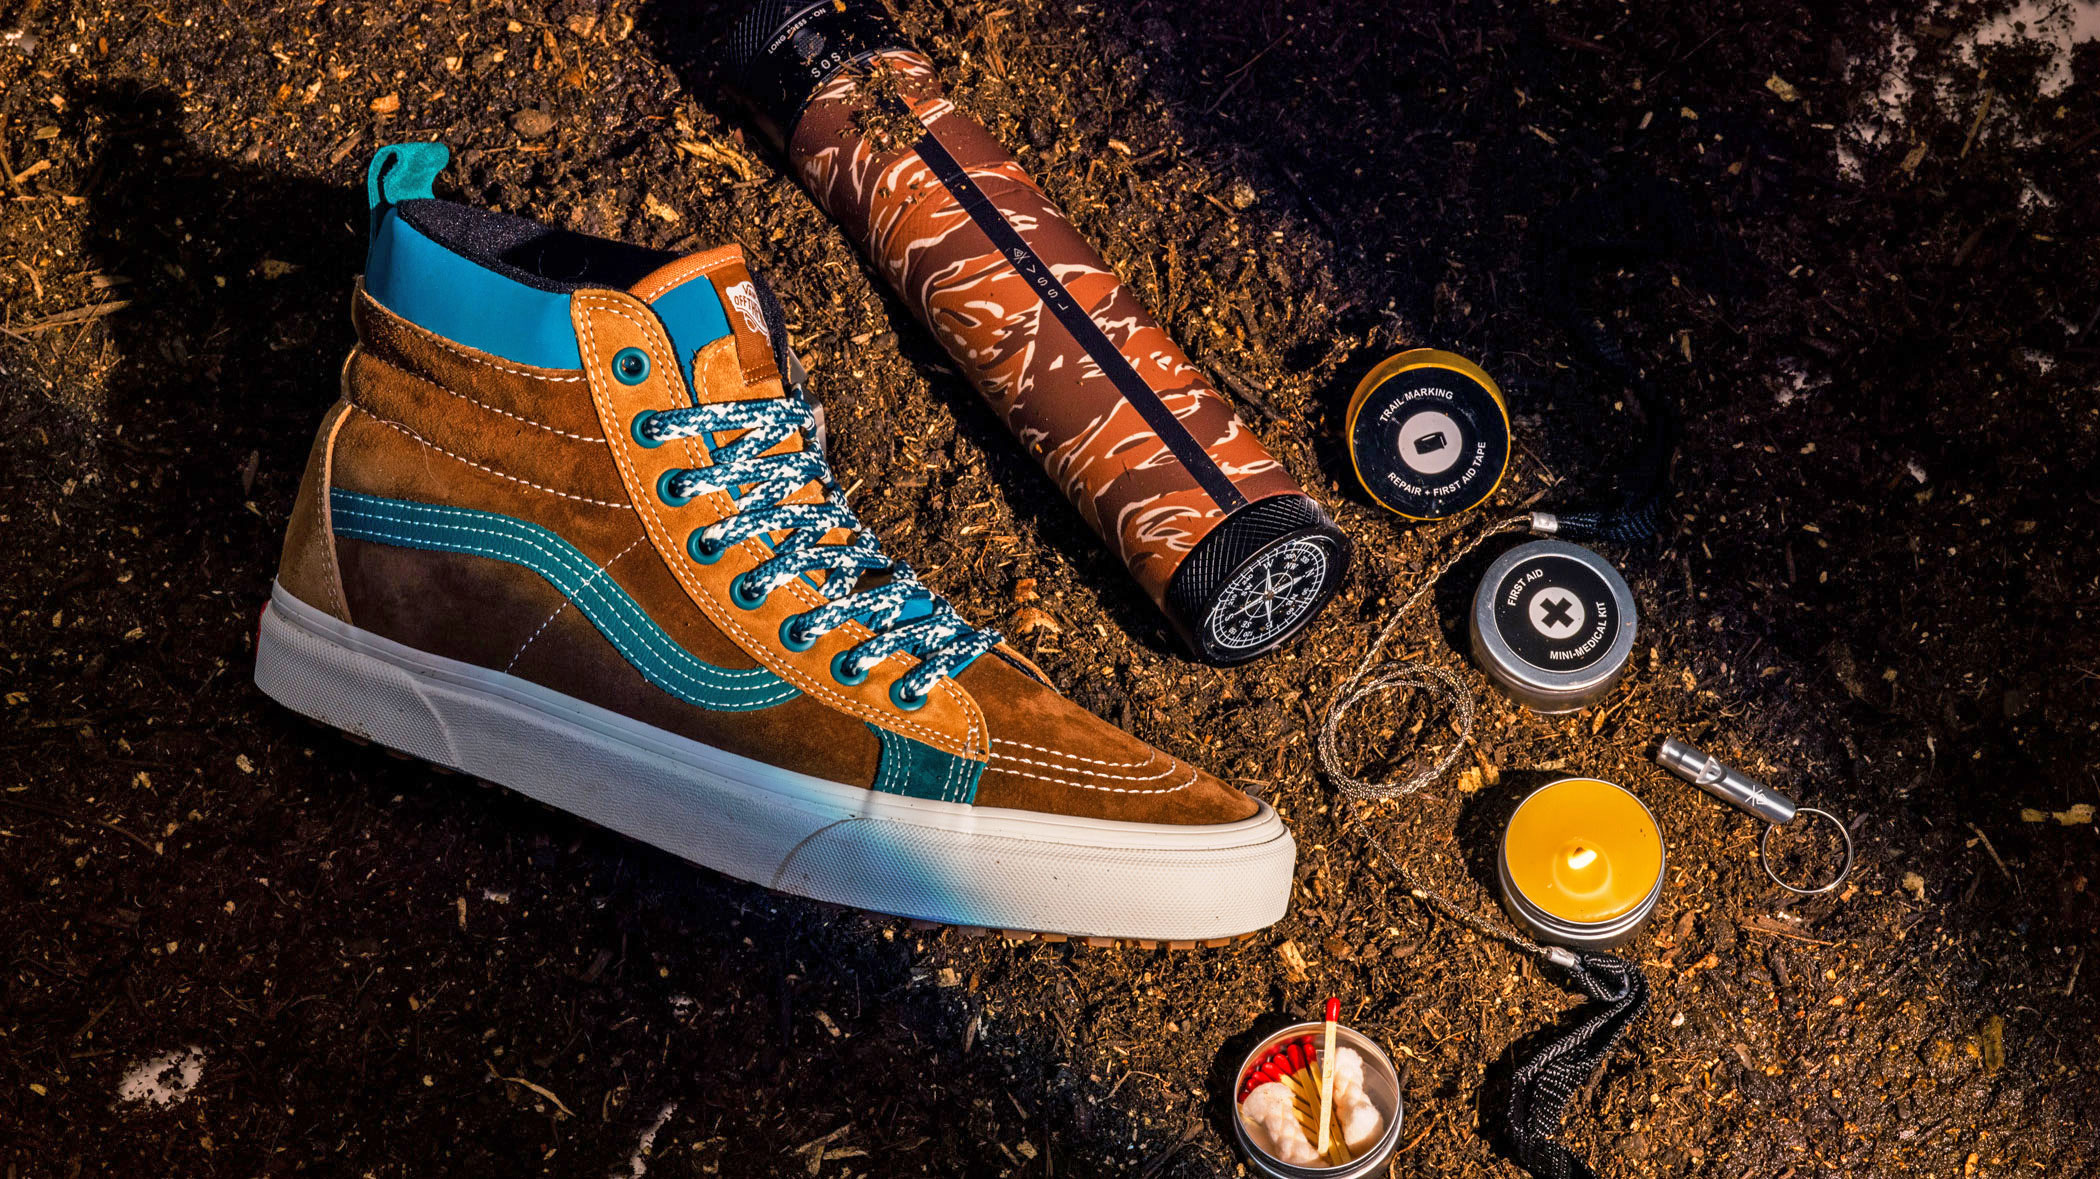 Gear News: 'Off The Wall' Meets Outdoors With Vault By Vans